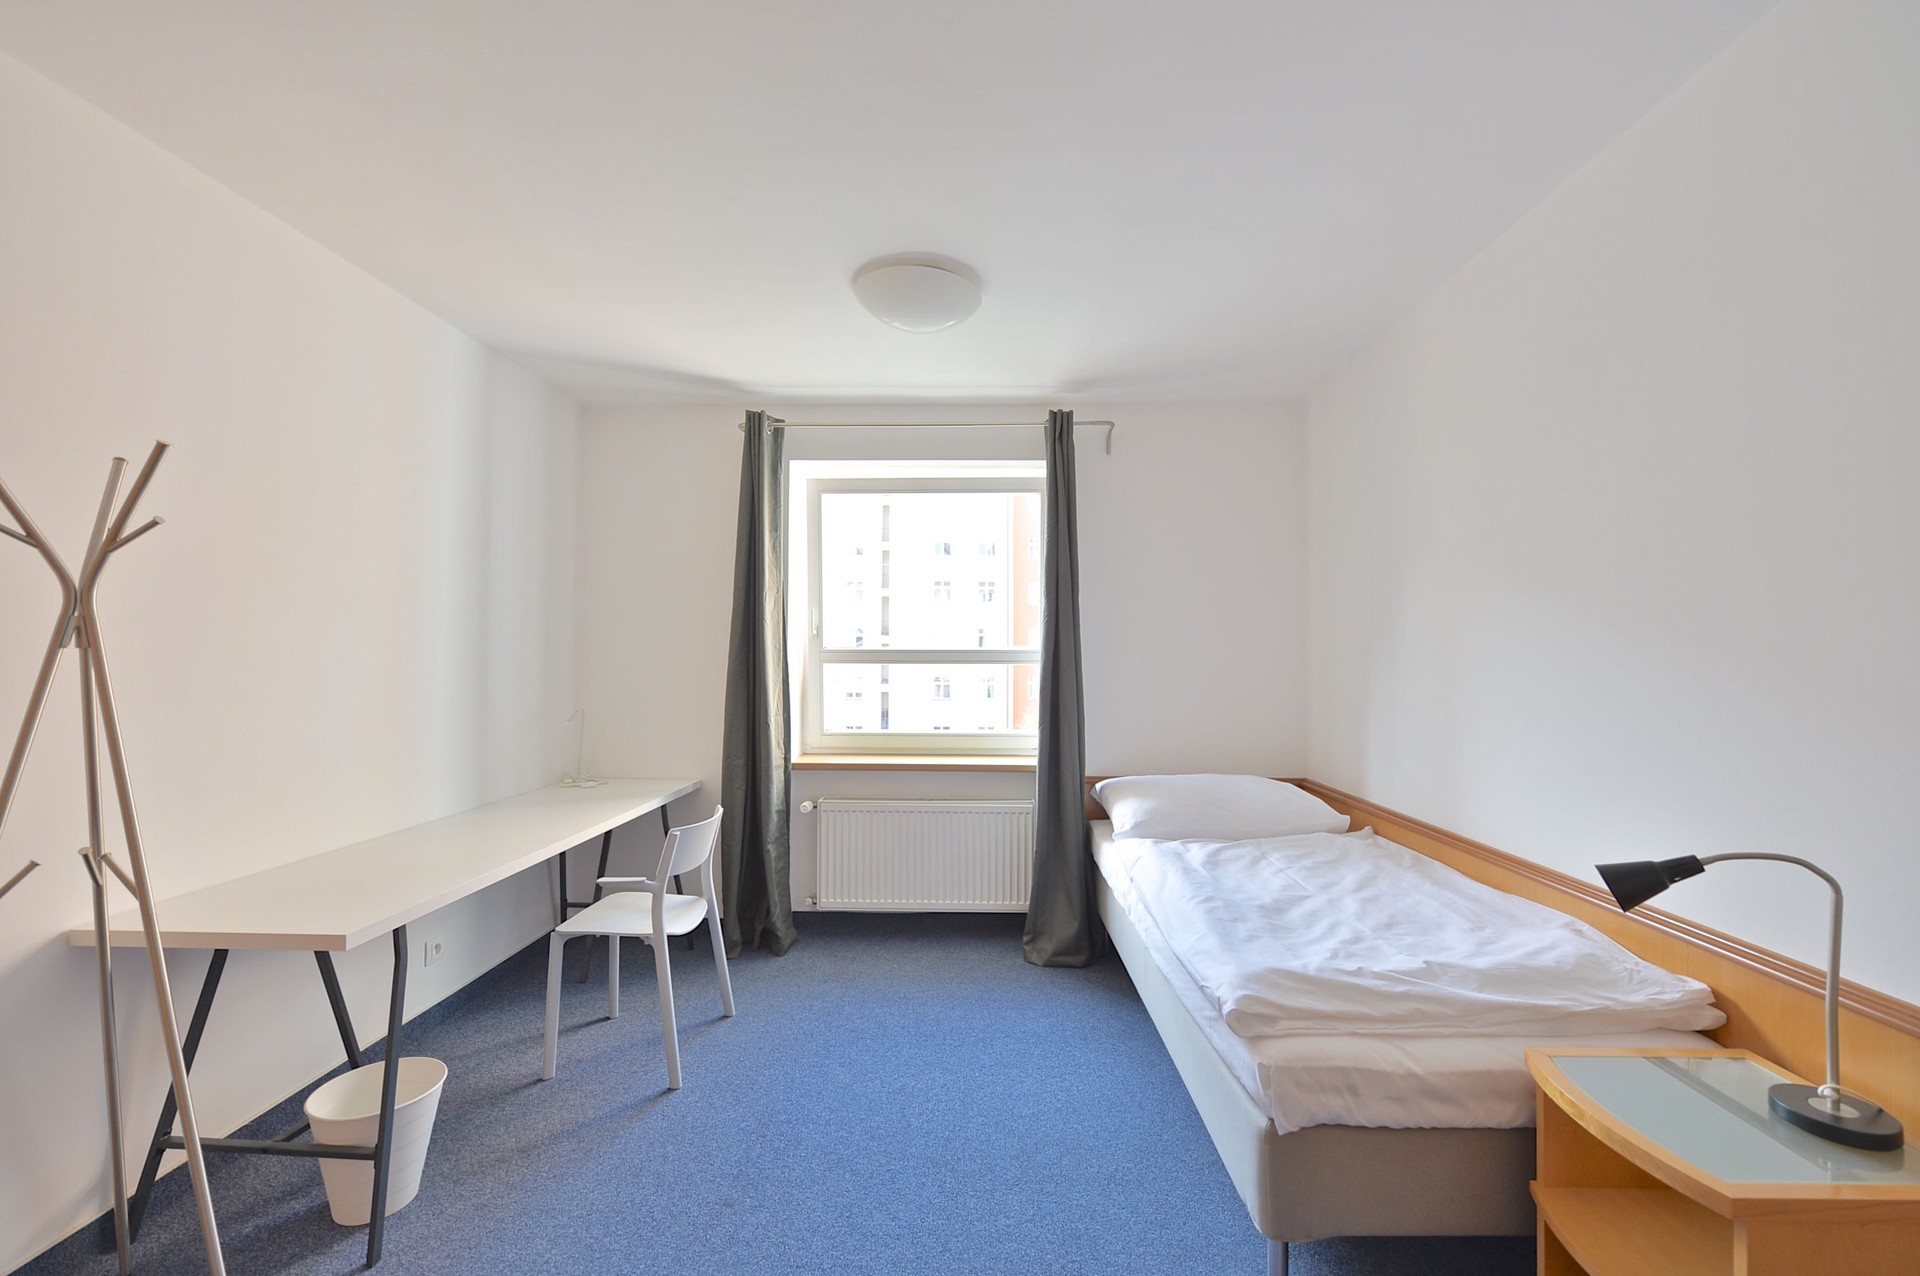 single parent student accommodation Find accommodation for international students in new zealand student accommodation includes halls of residence, homestays, boarding & flatting wwwfourcornersconz.